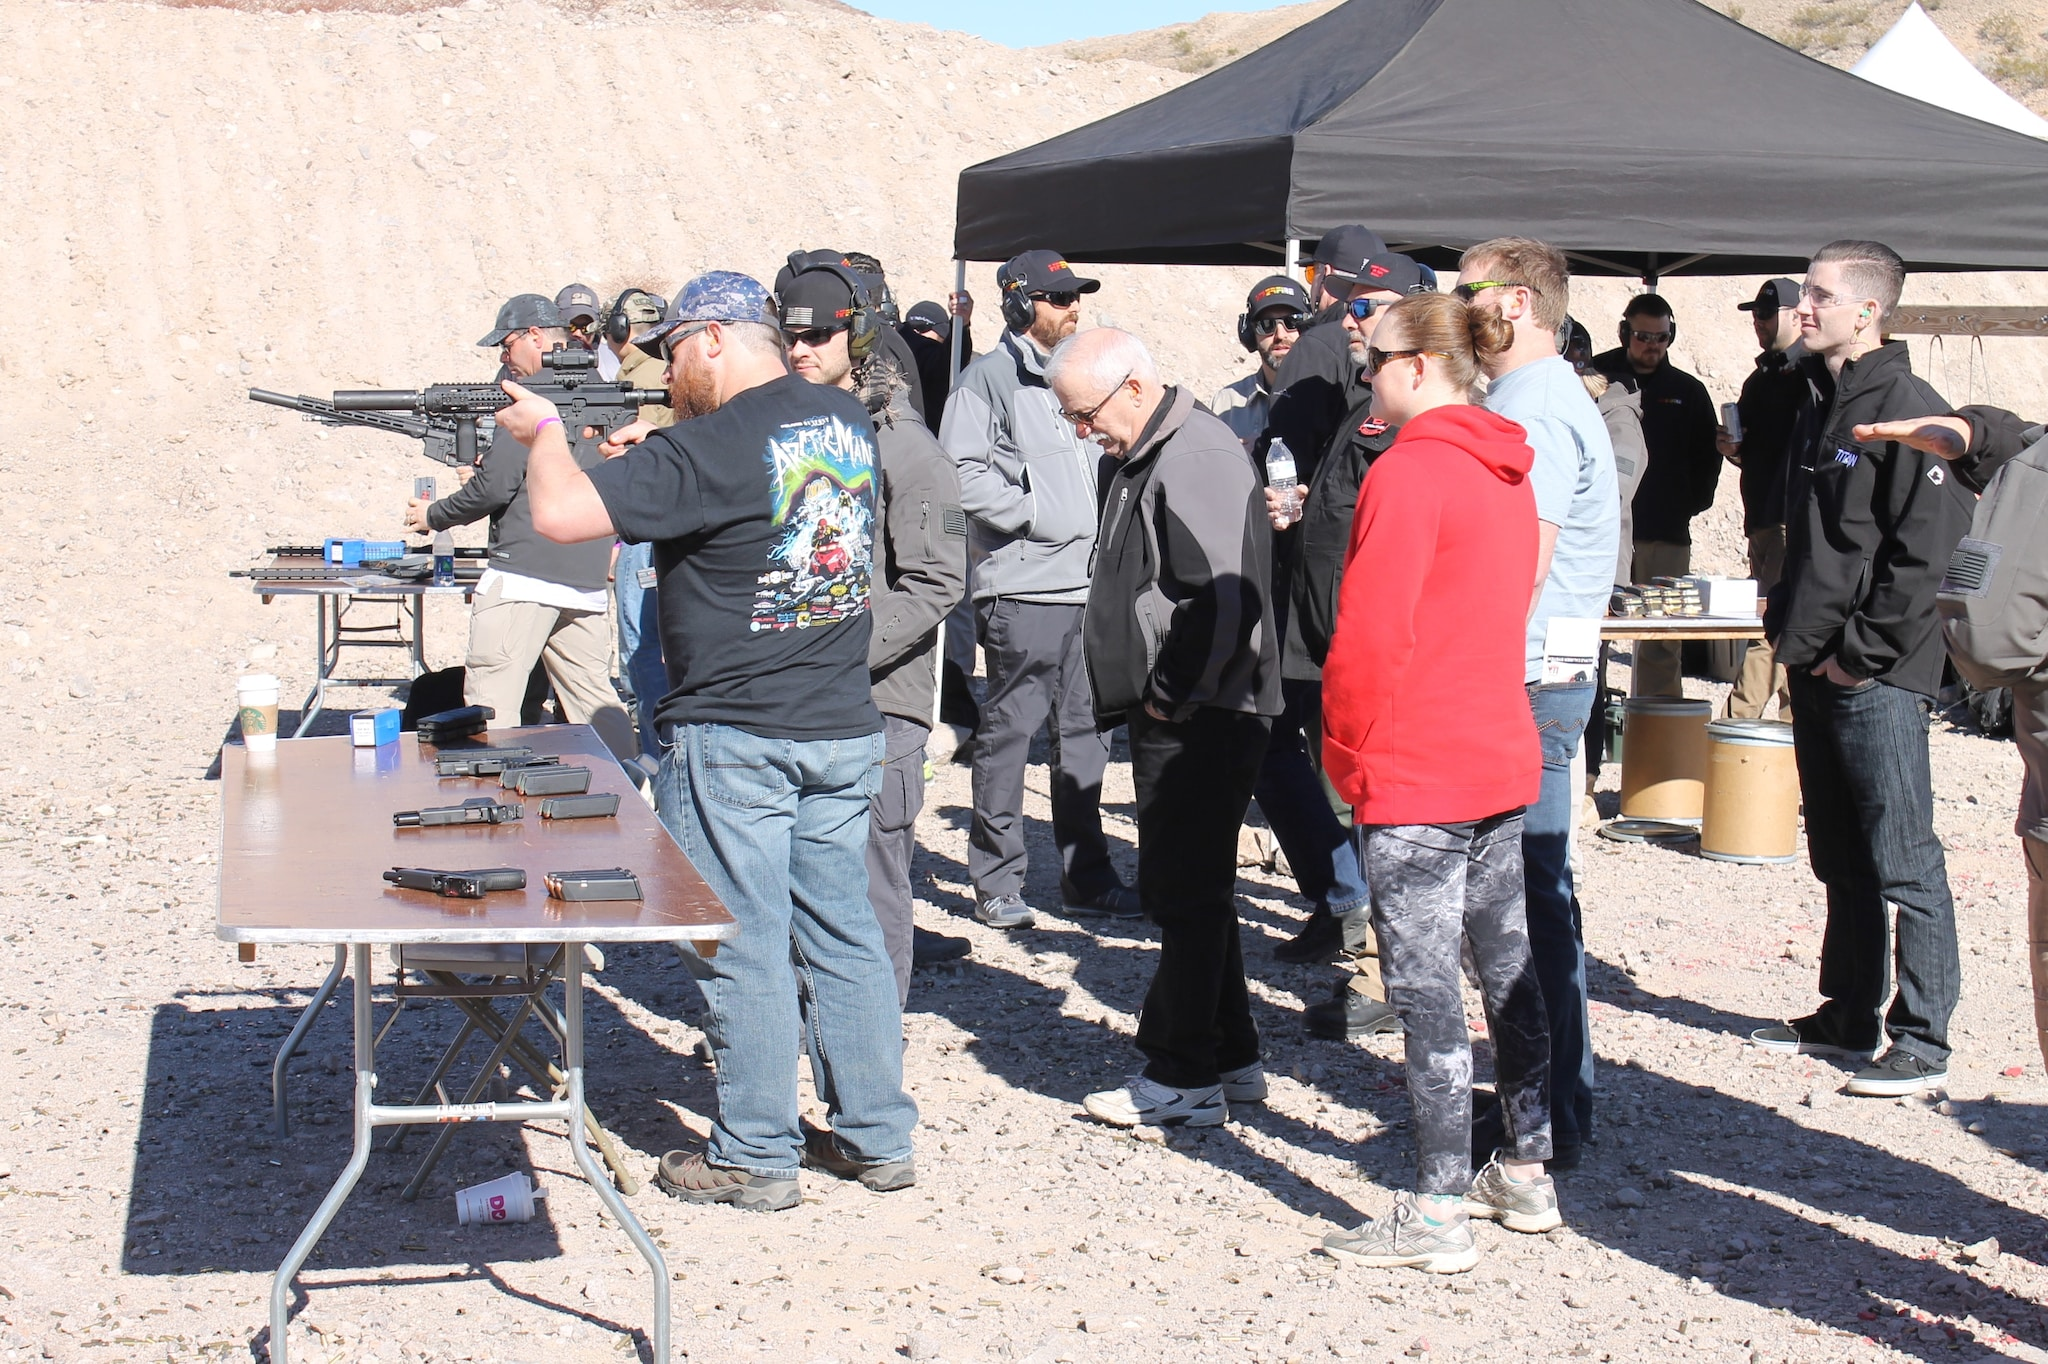 Patrons test new products at the Anteris Alliance Try & Buy event just prior to SHOT Show 2017.